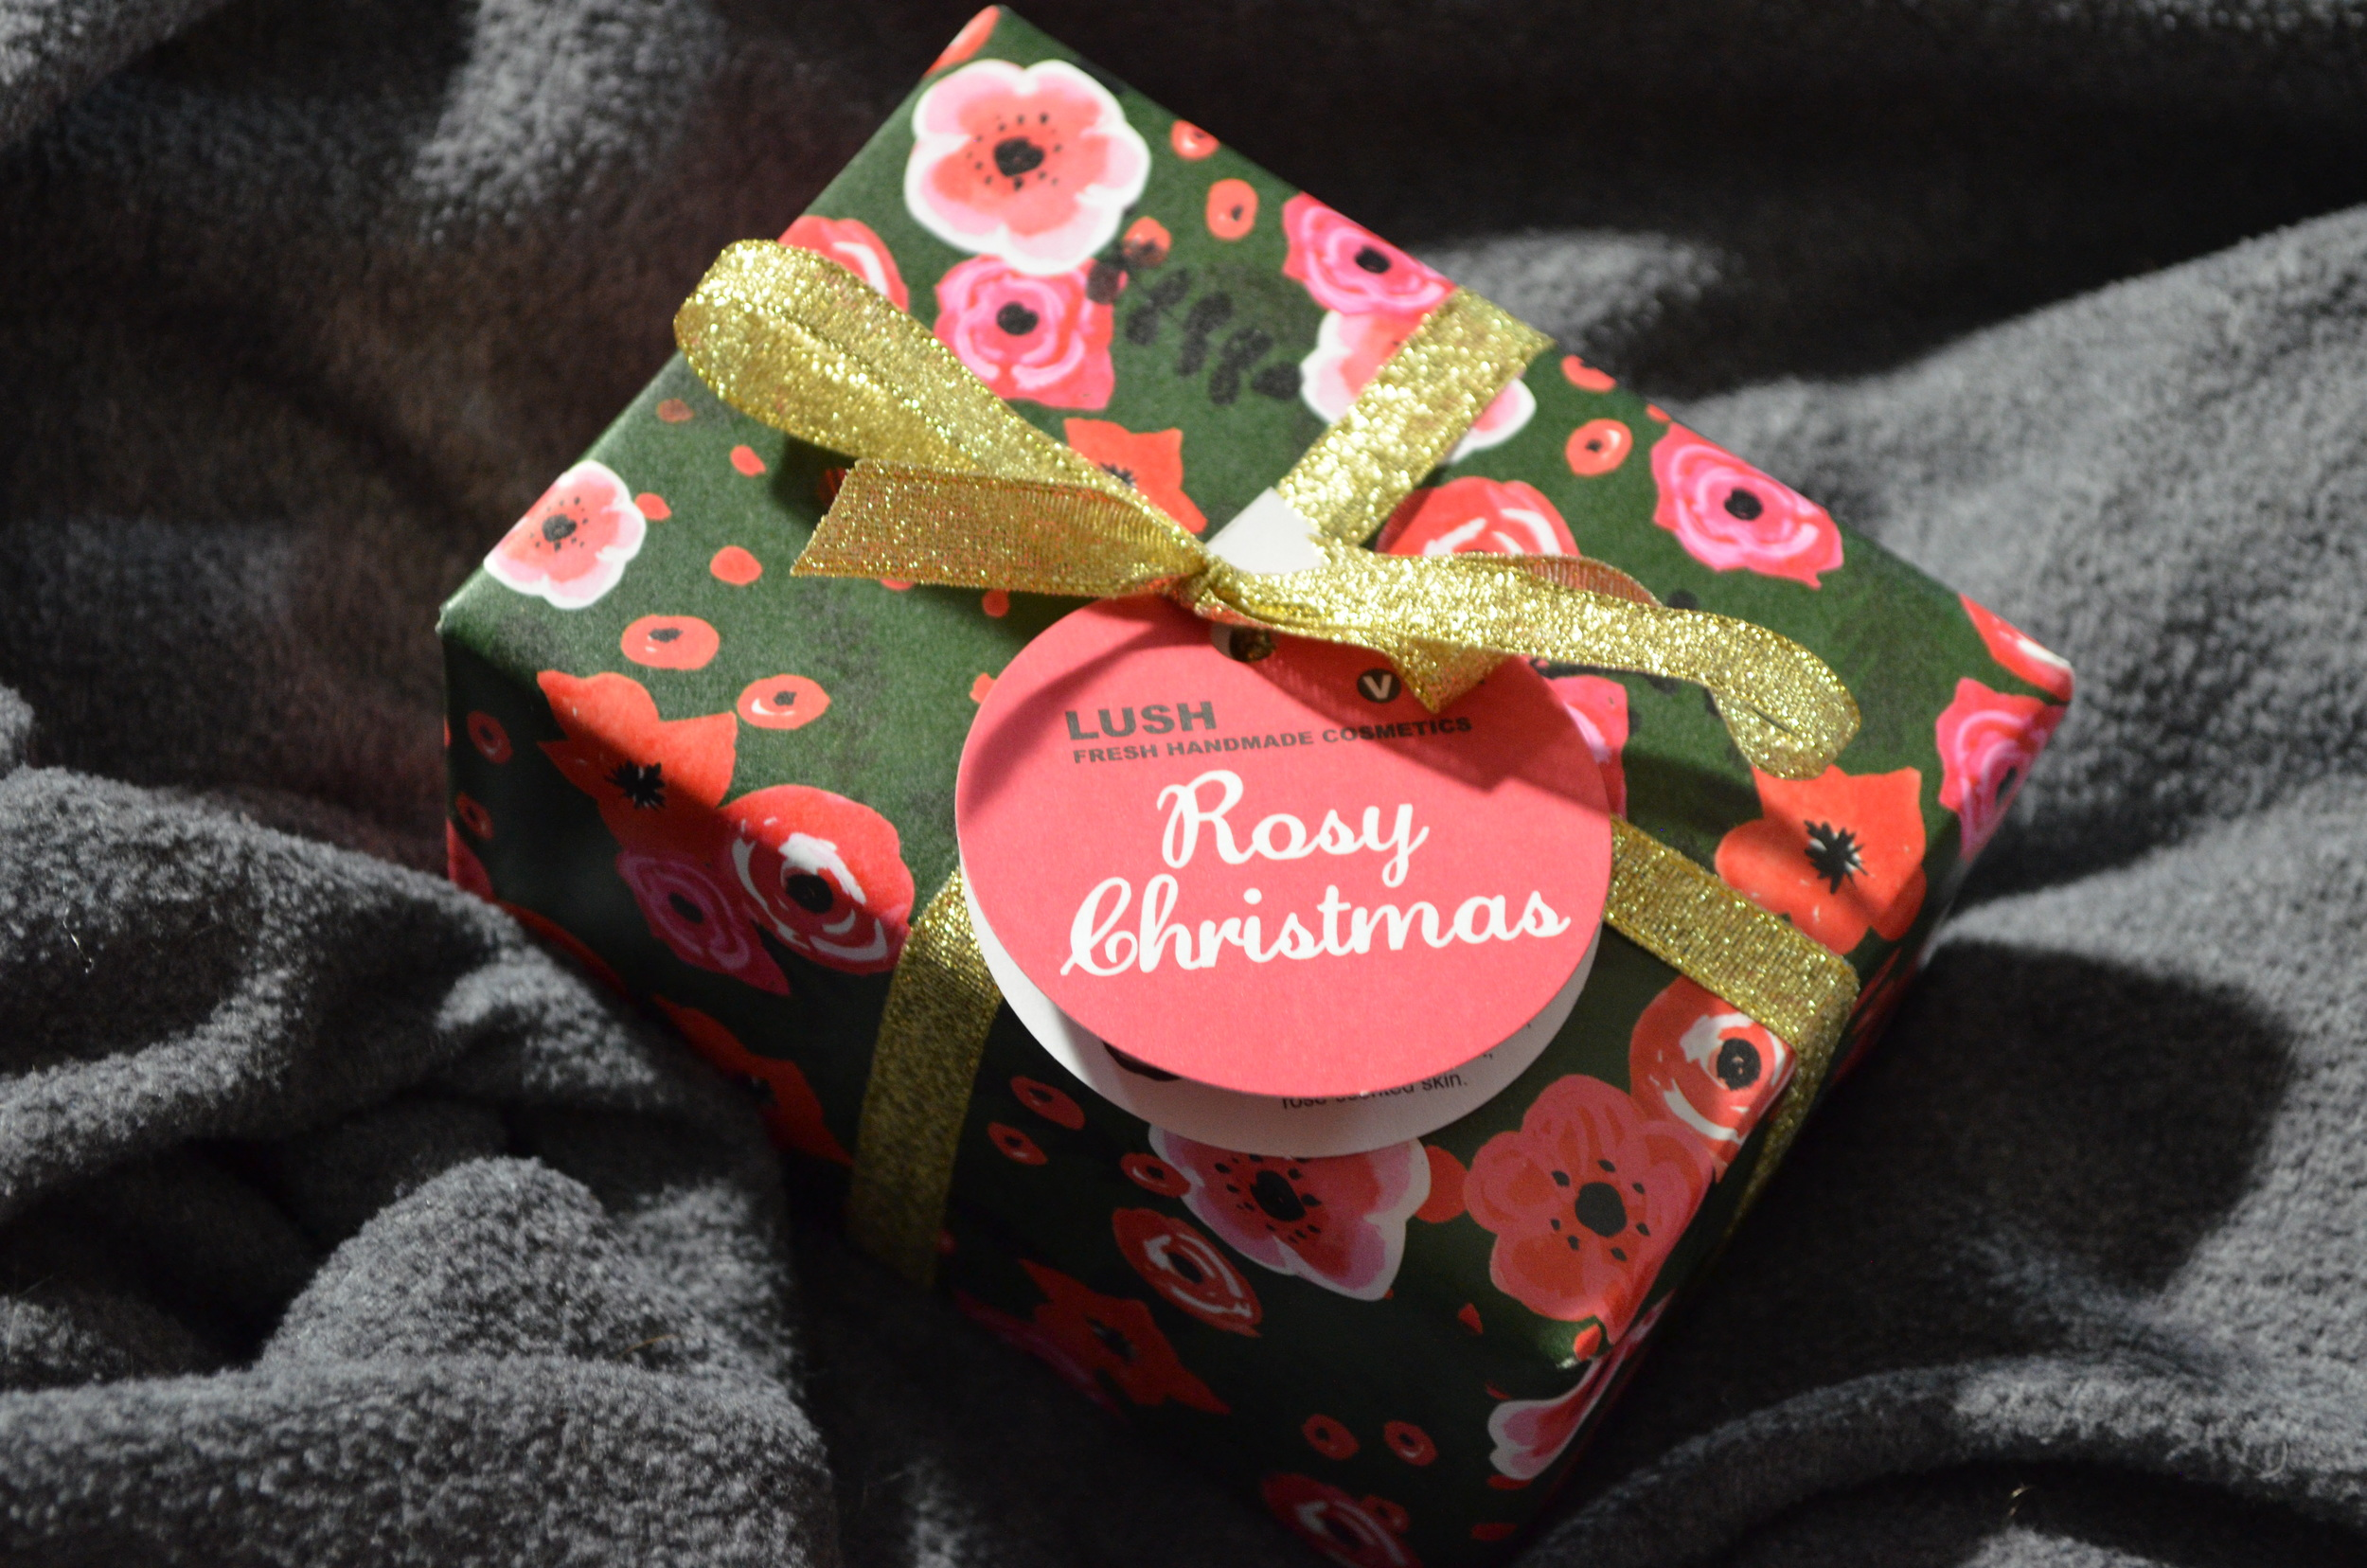 lush rosy christmas review